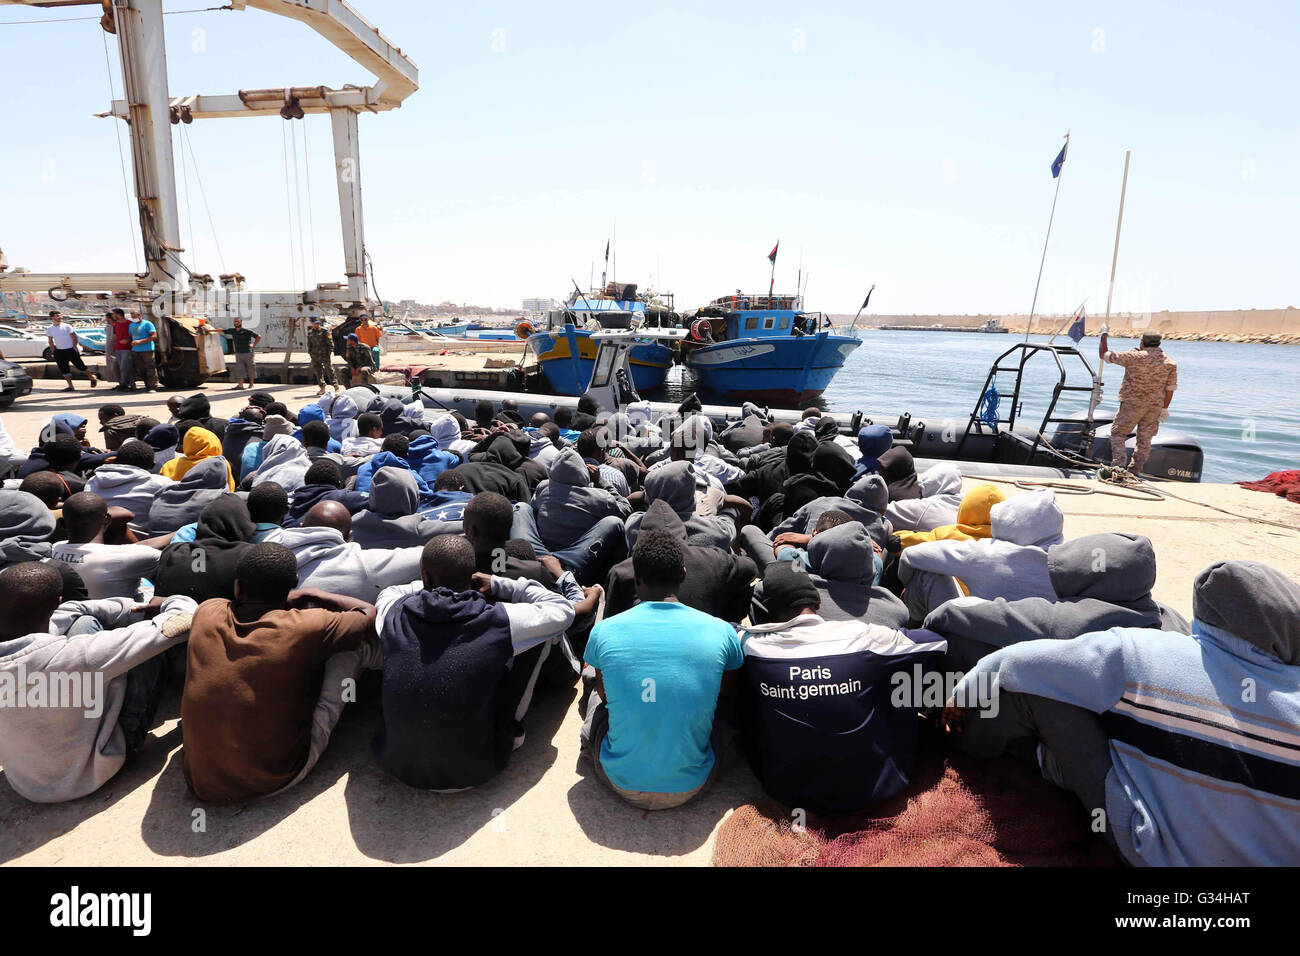 Tripoli. 7th June, 2016. Illegal migrants sit on the dock at the Tripoli port in Tripoli, Libya on June 7, 2016. - Stock Image